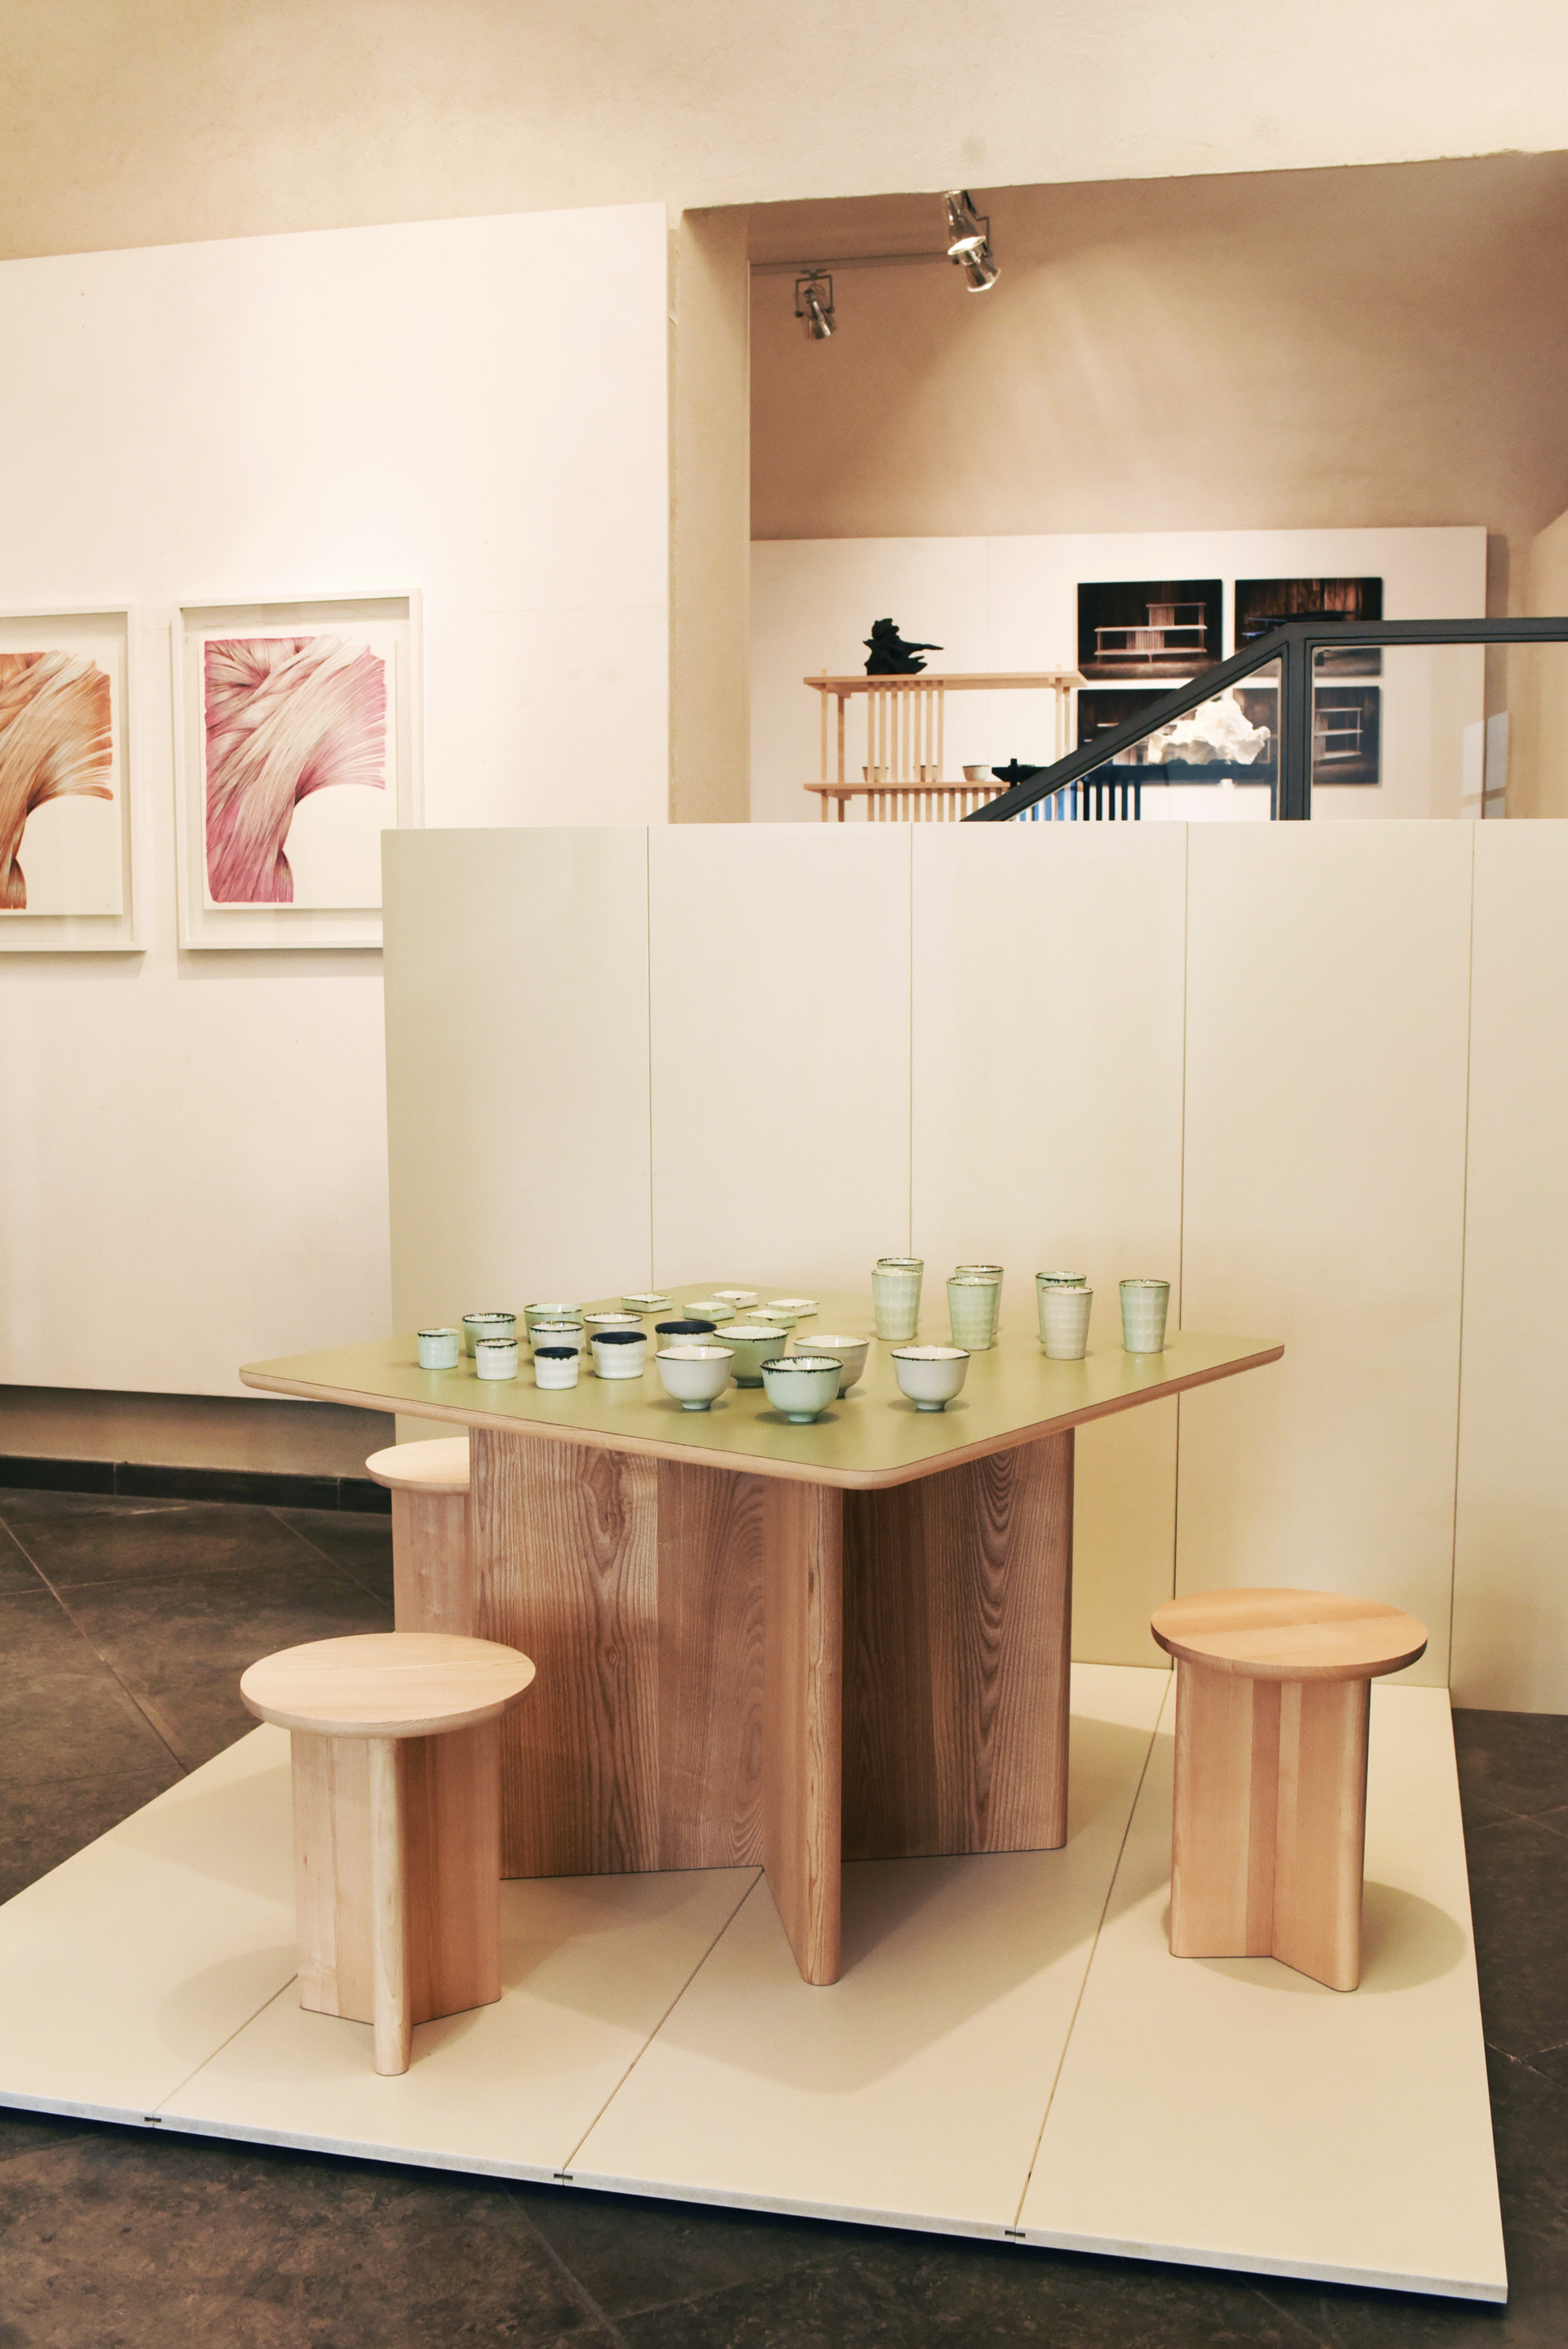 Table X Tabourets Y Galerie Chouleur (1) (FILEminimizer).jpg